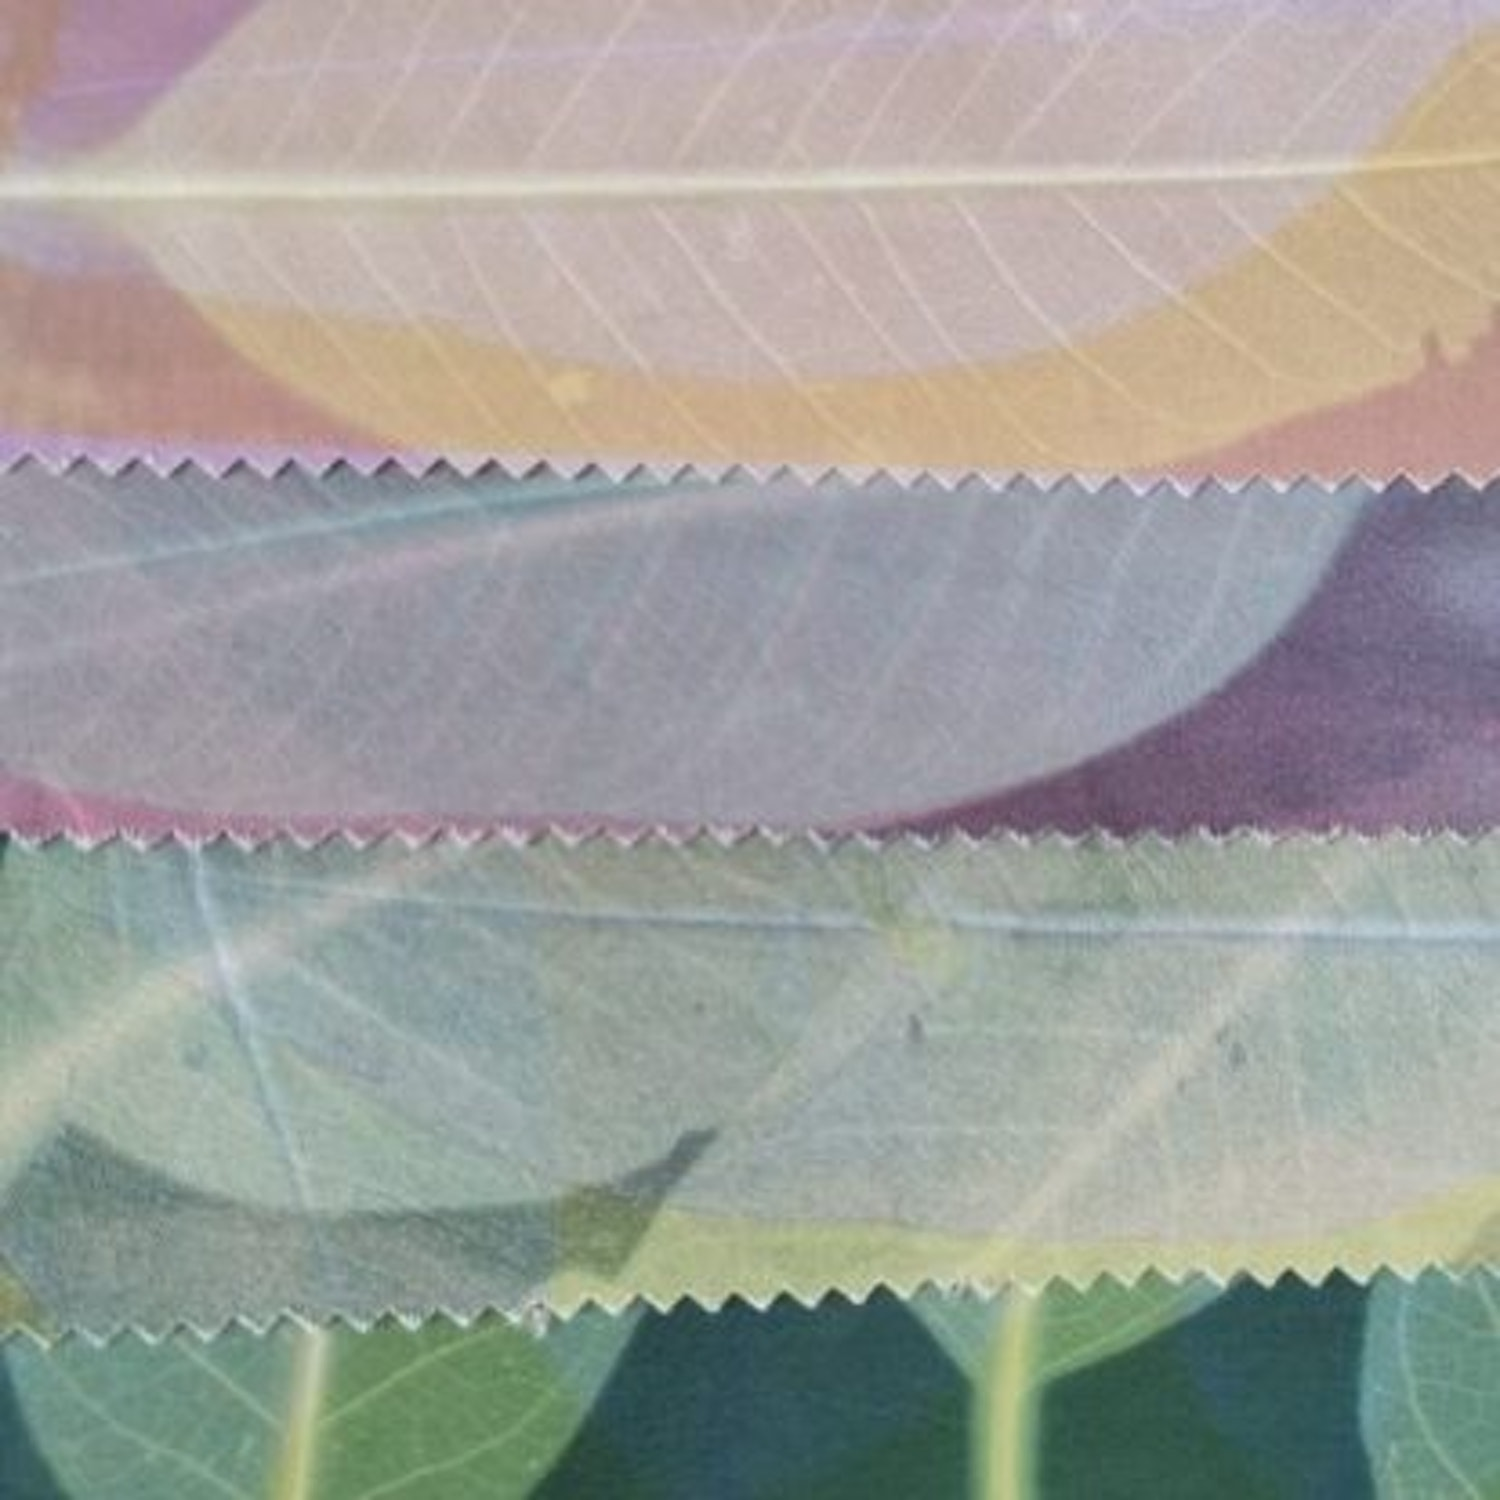 Mono and transfer printing workshop transfer printed leaves by clarissa ready 2021 edited 4